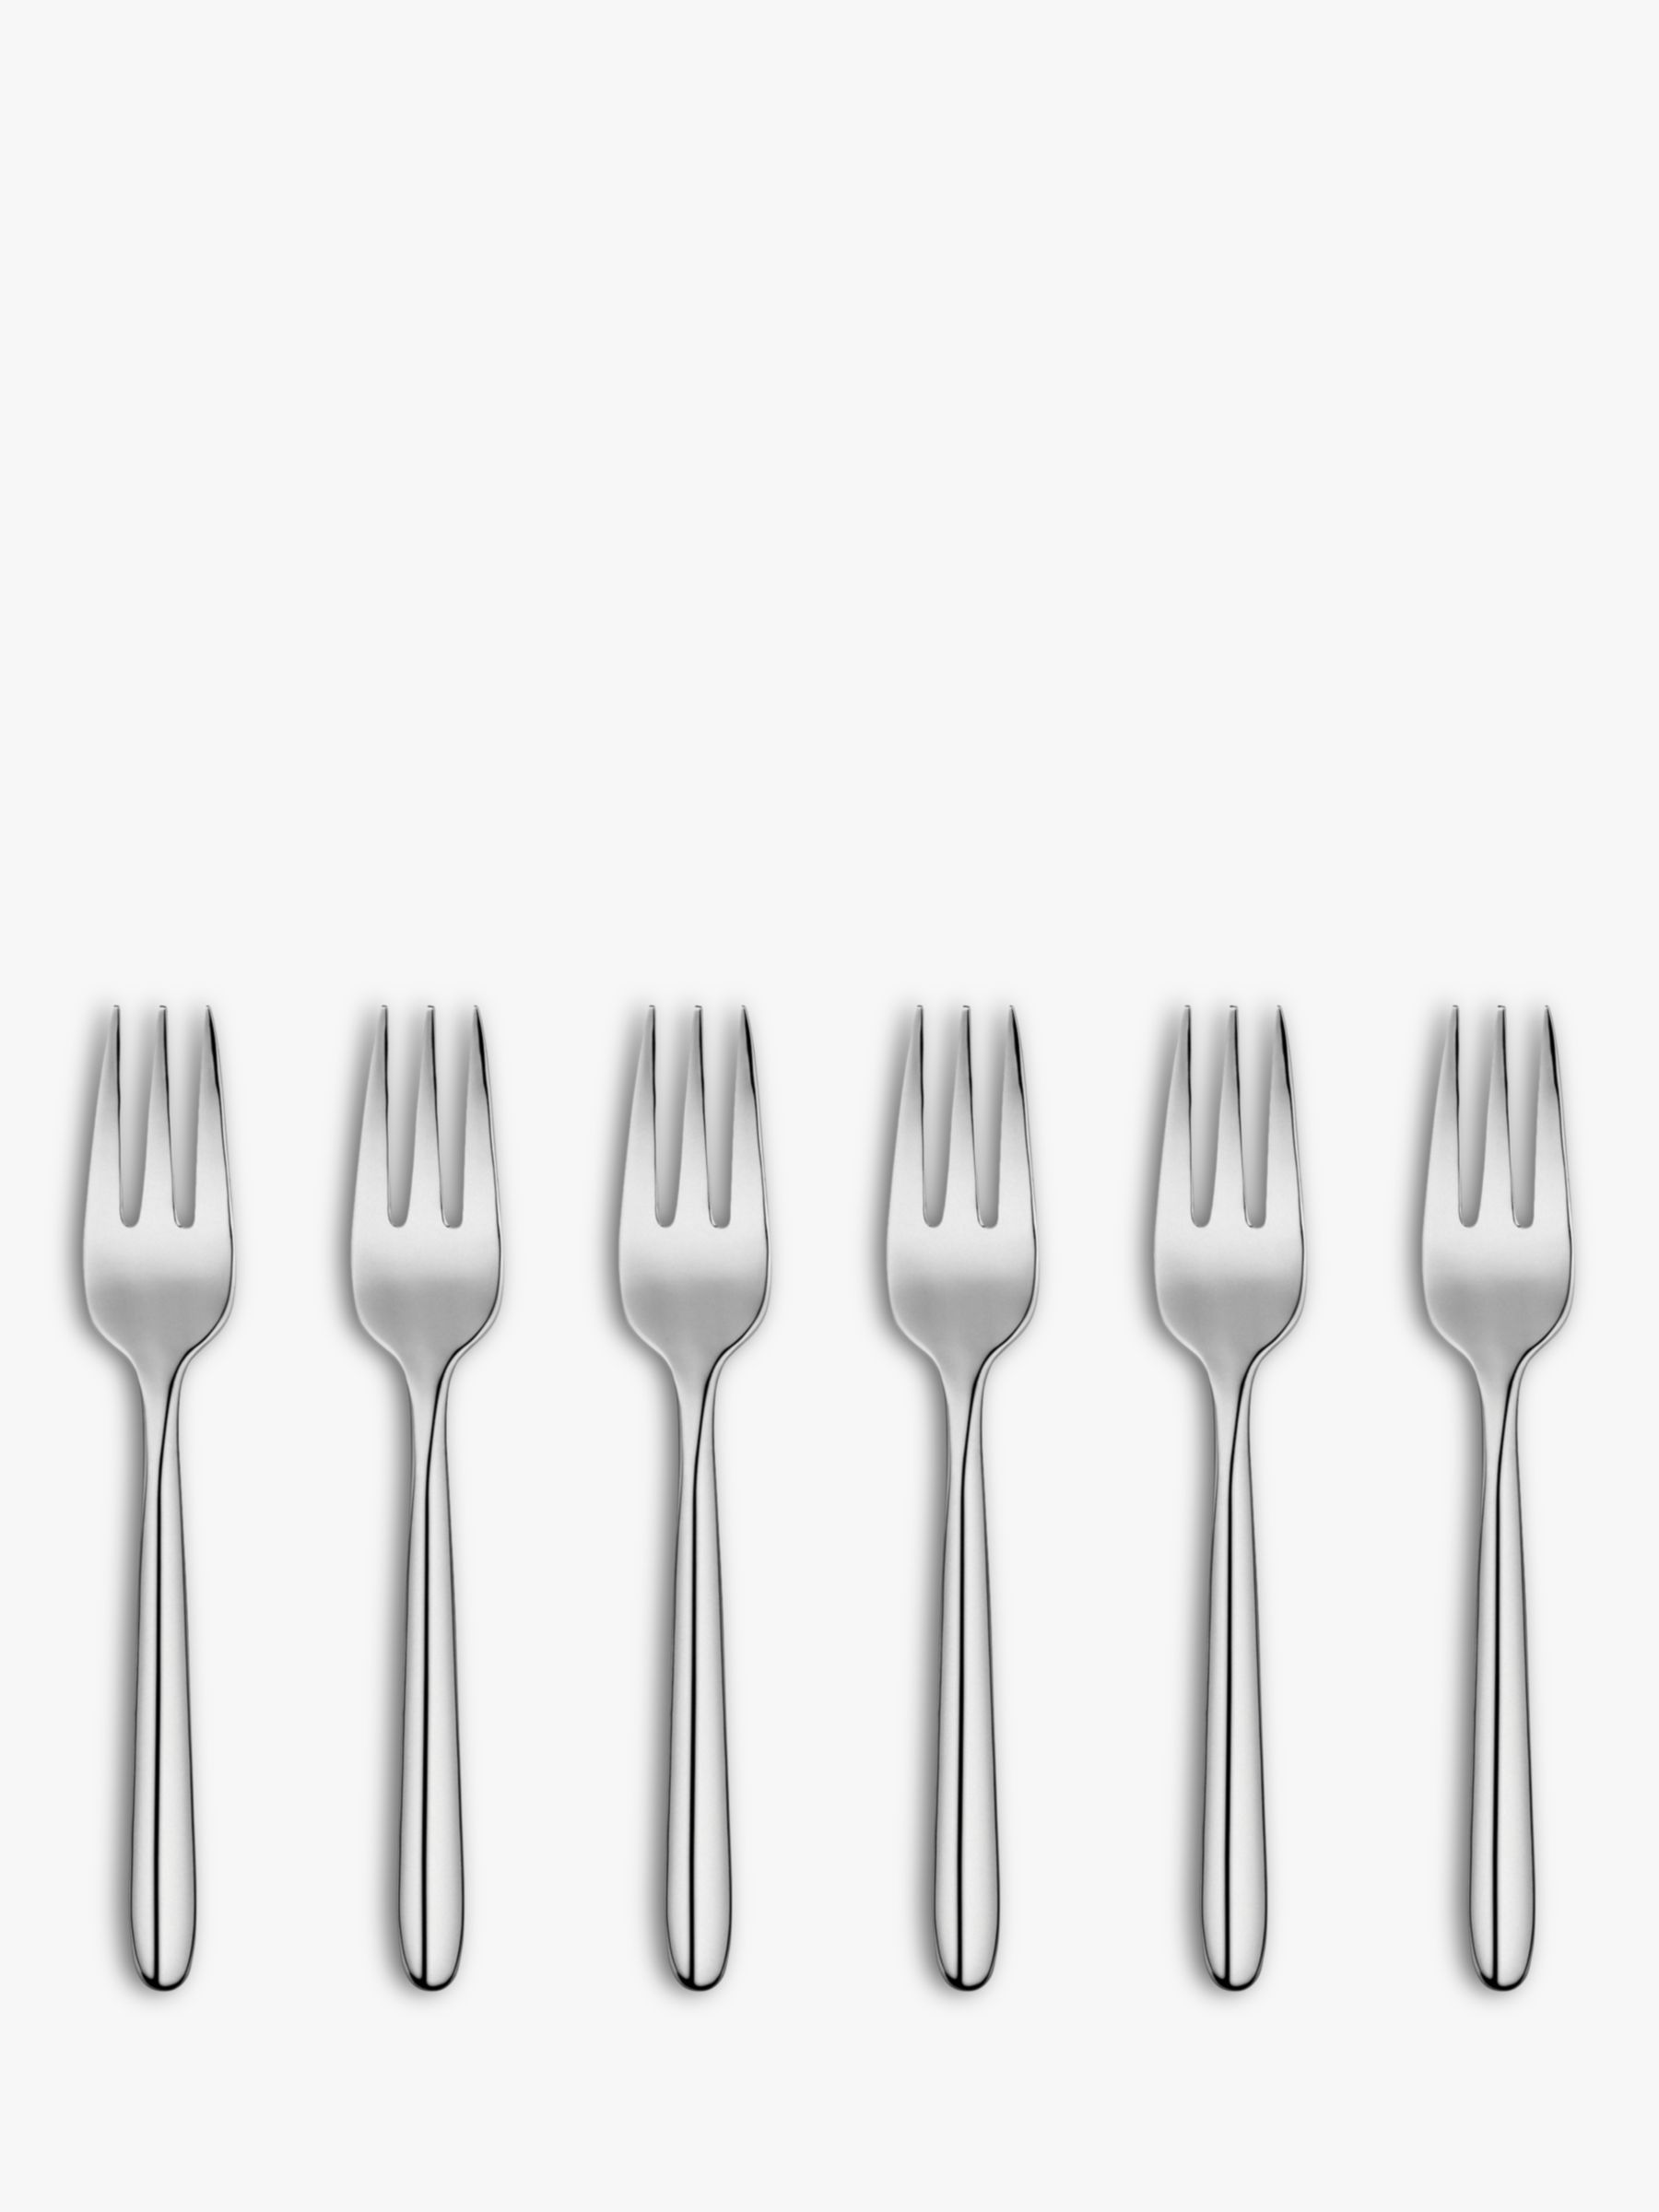 House by John Lewis House by John Lewis Pastry Forks, Set of 6